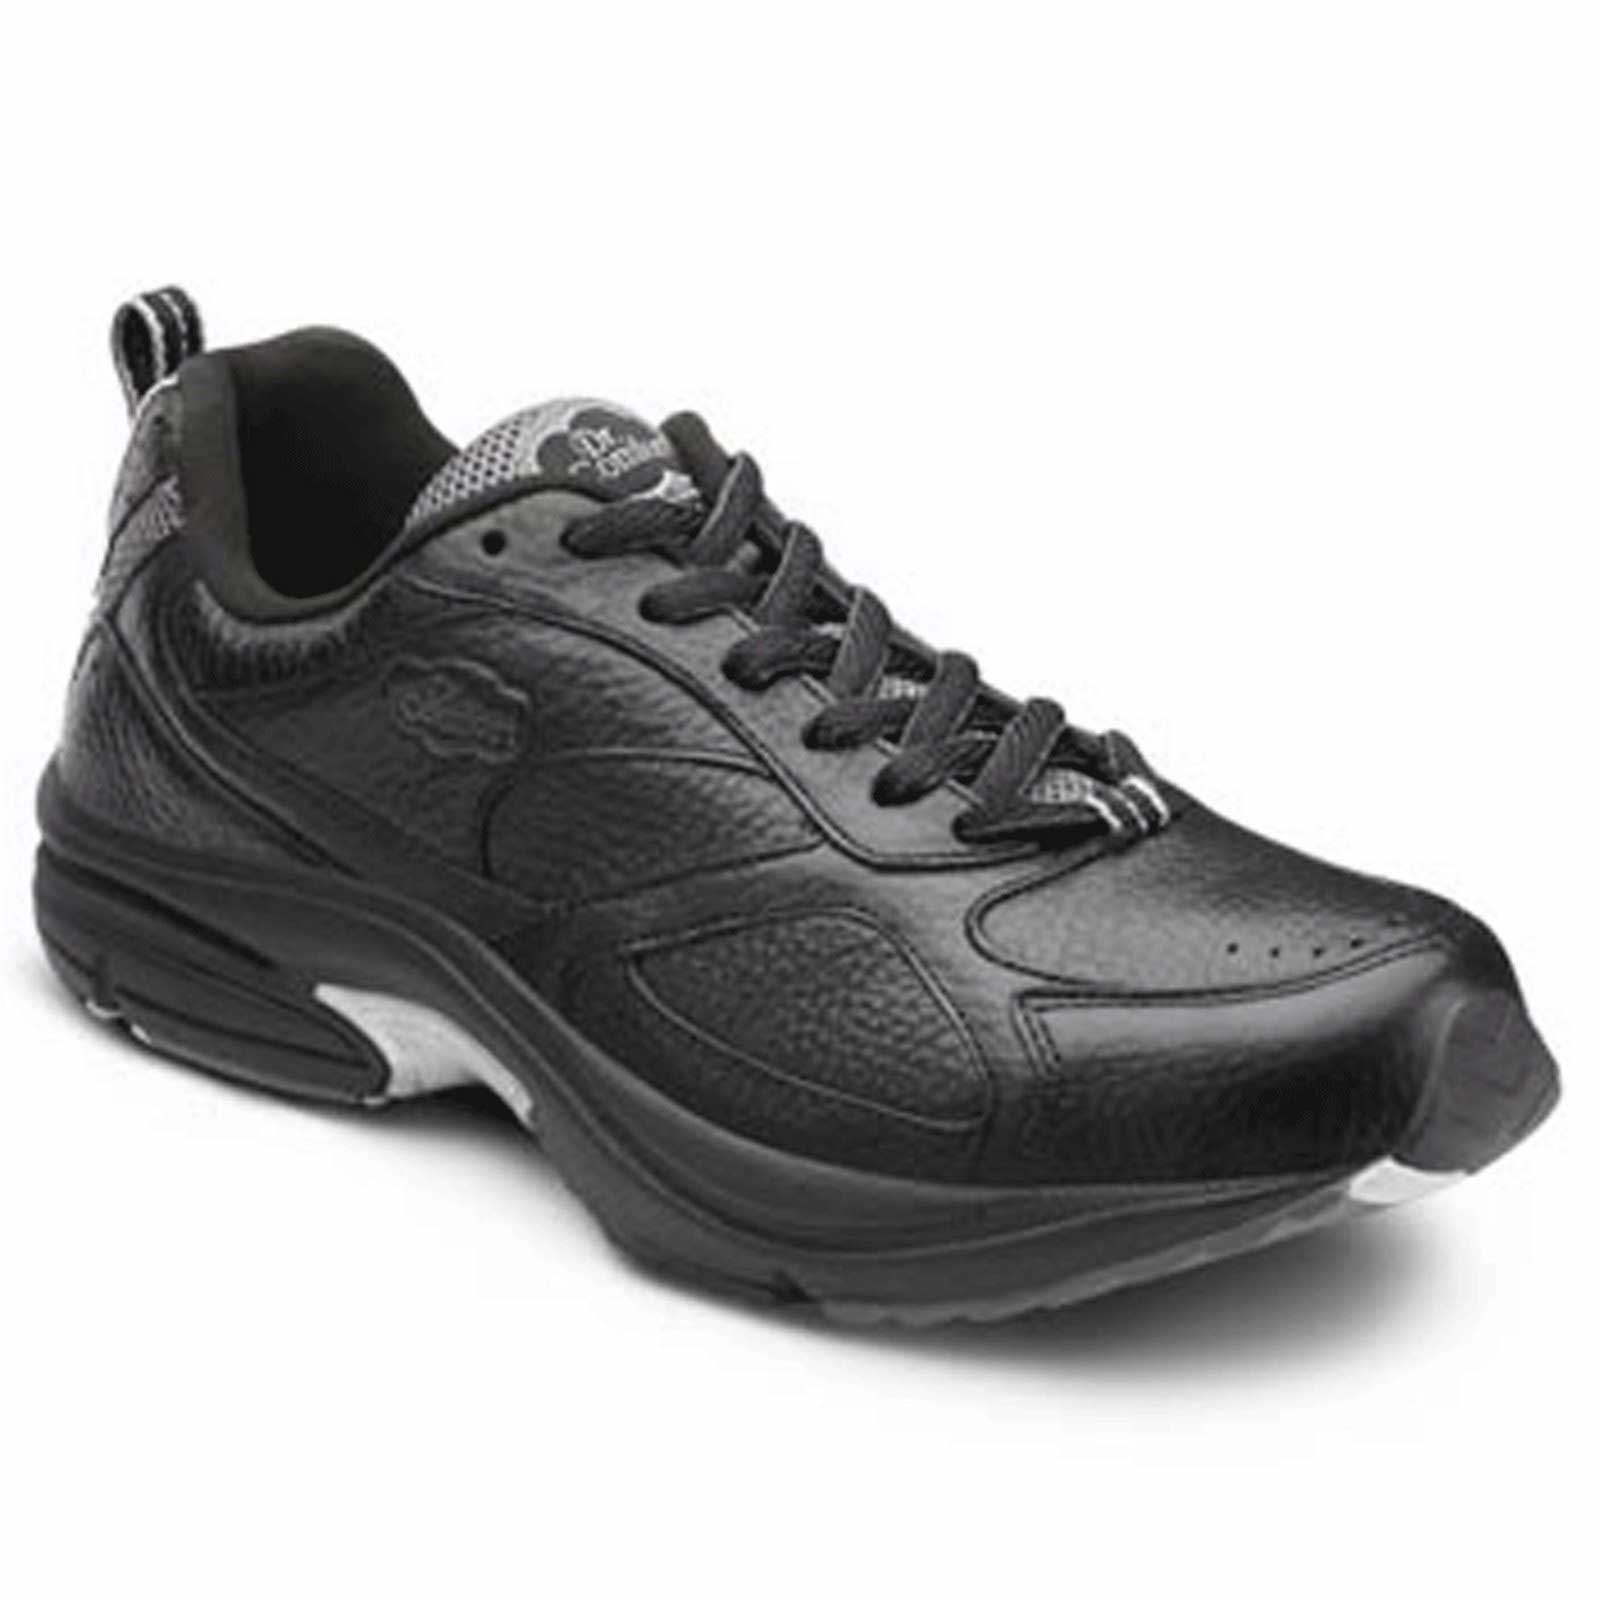 1a3afa8c74cb5b Dr. Comfort Shoes Winner Plus (formerly Champion Plus) - Men s Comfort  Therapeutic Diabetic Shoe with Gel Plus Inserts - Athletic - Medium - Extra  Wide ...